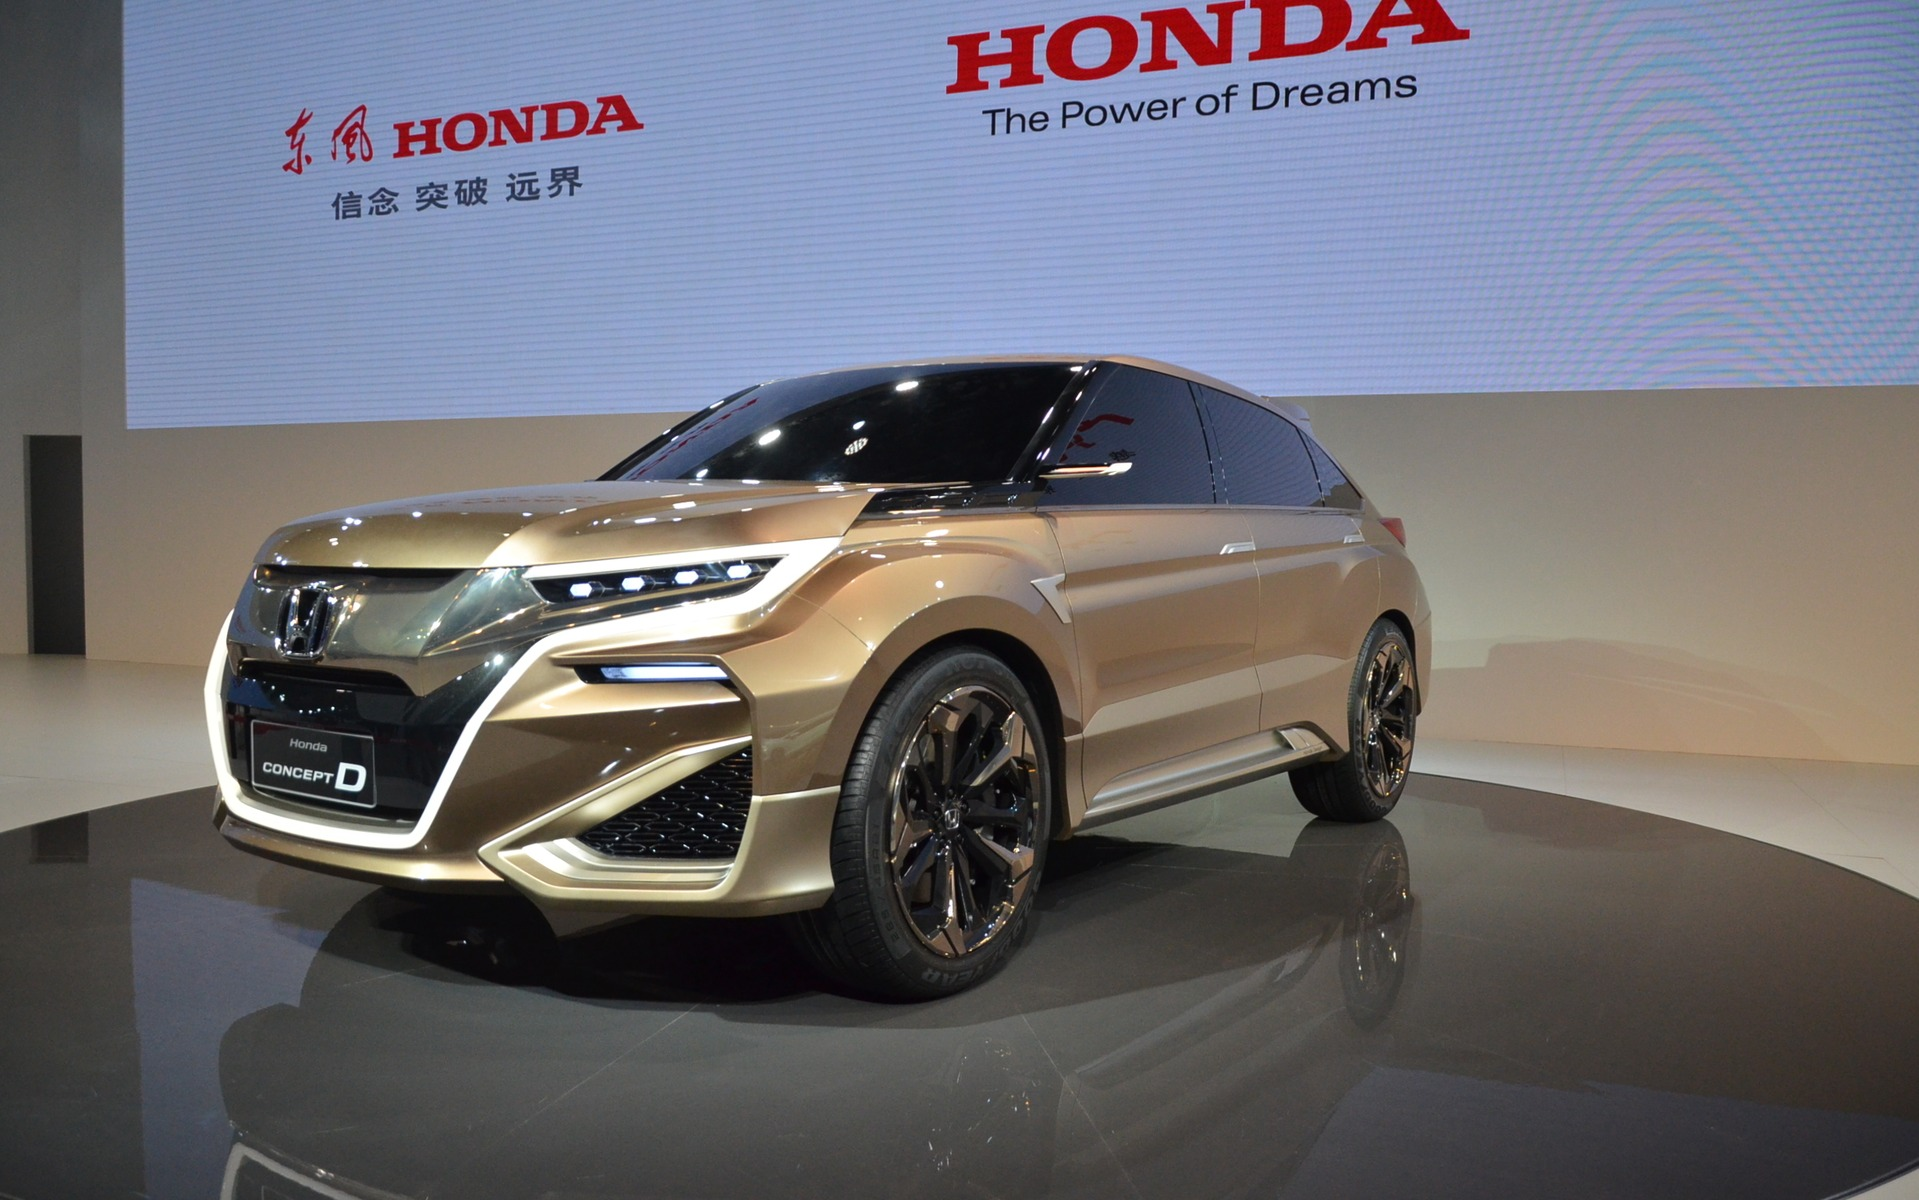 honda concept d a chinaonly concept 36